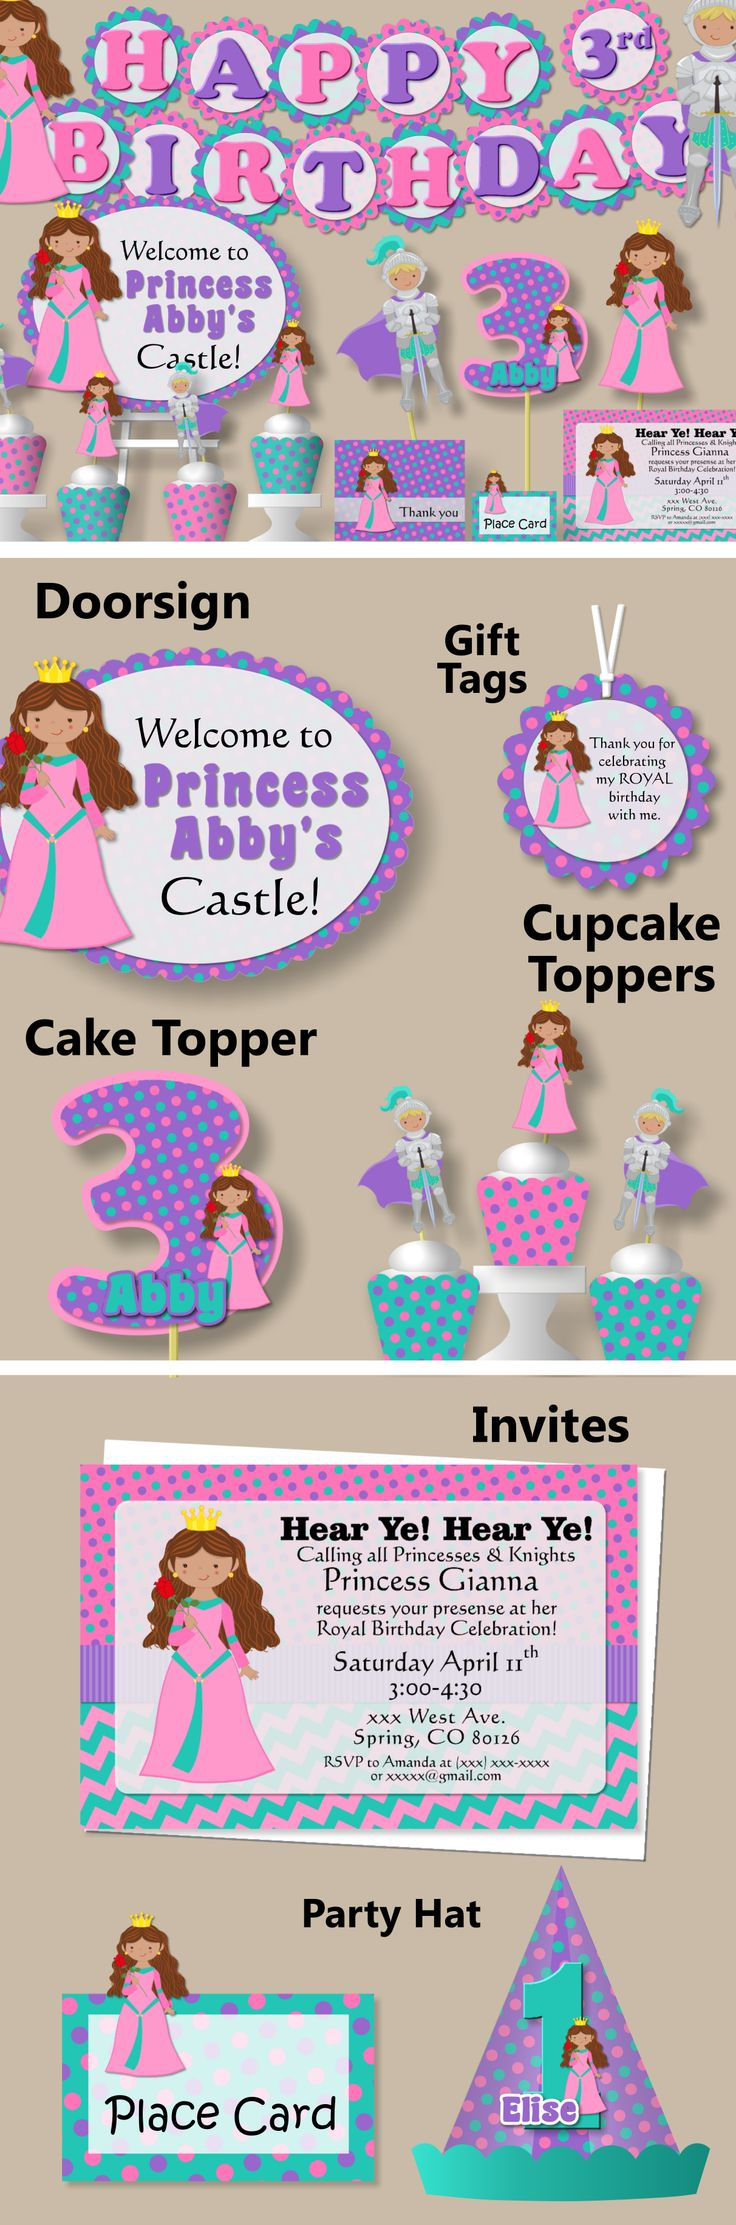 Princess and Knight Birthday Party Decorations - Package, Banner, Favor Tags, Cupcake Toppers, Invitations, Party Hat #bcpaperdesigns